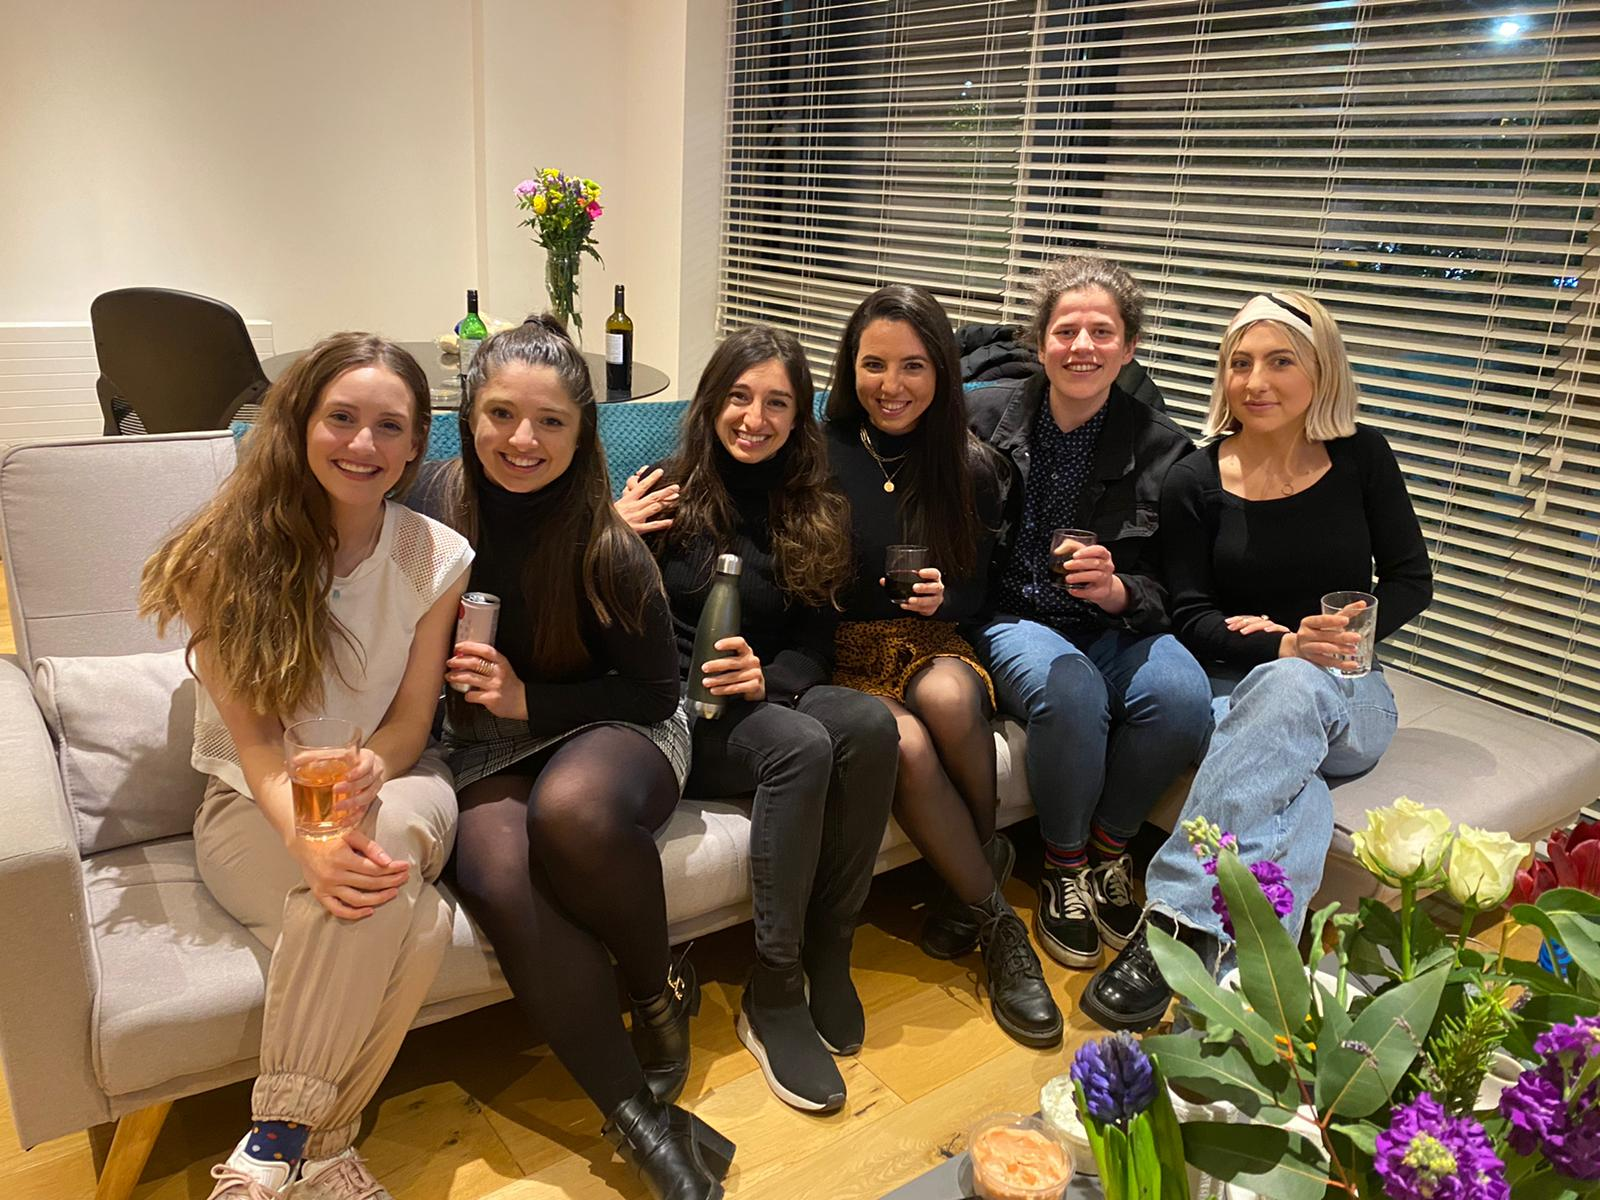 Friends in London apartment